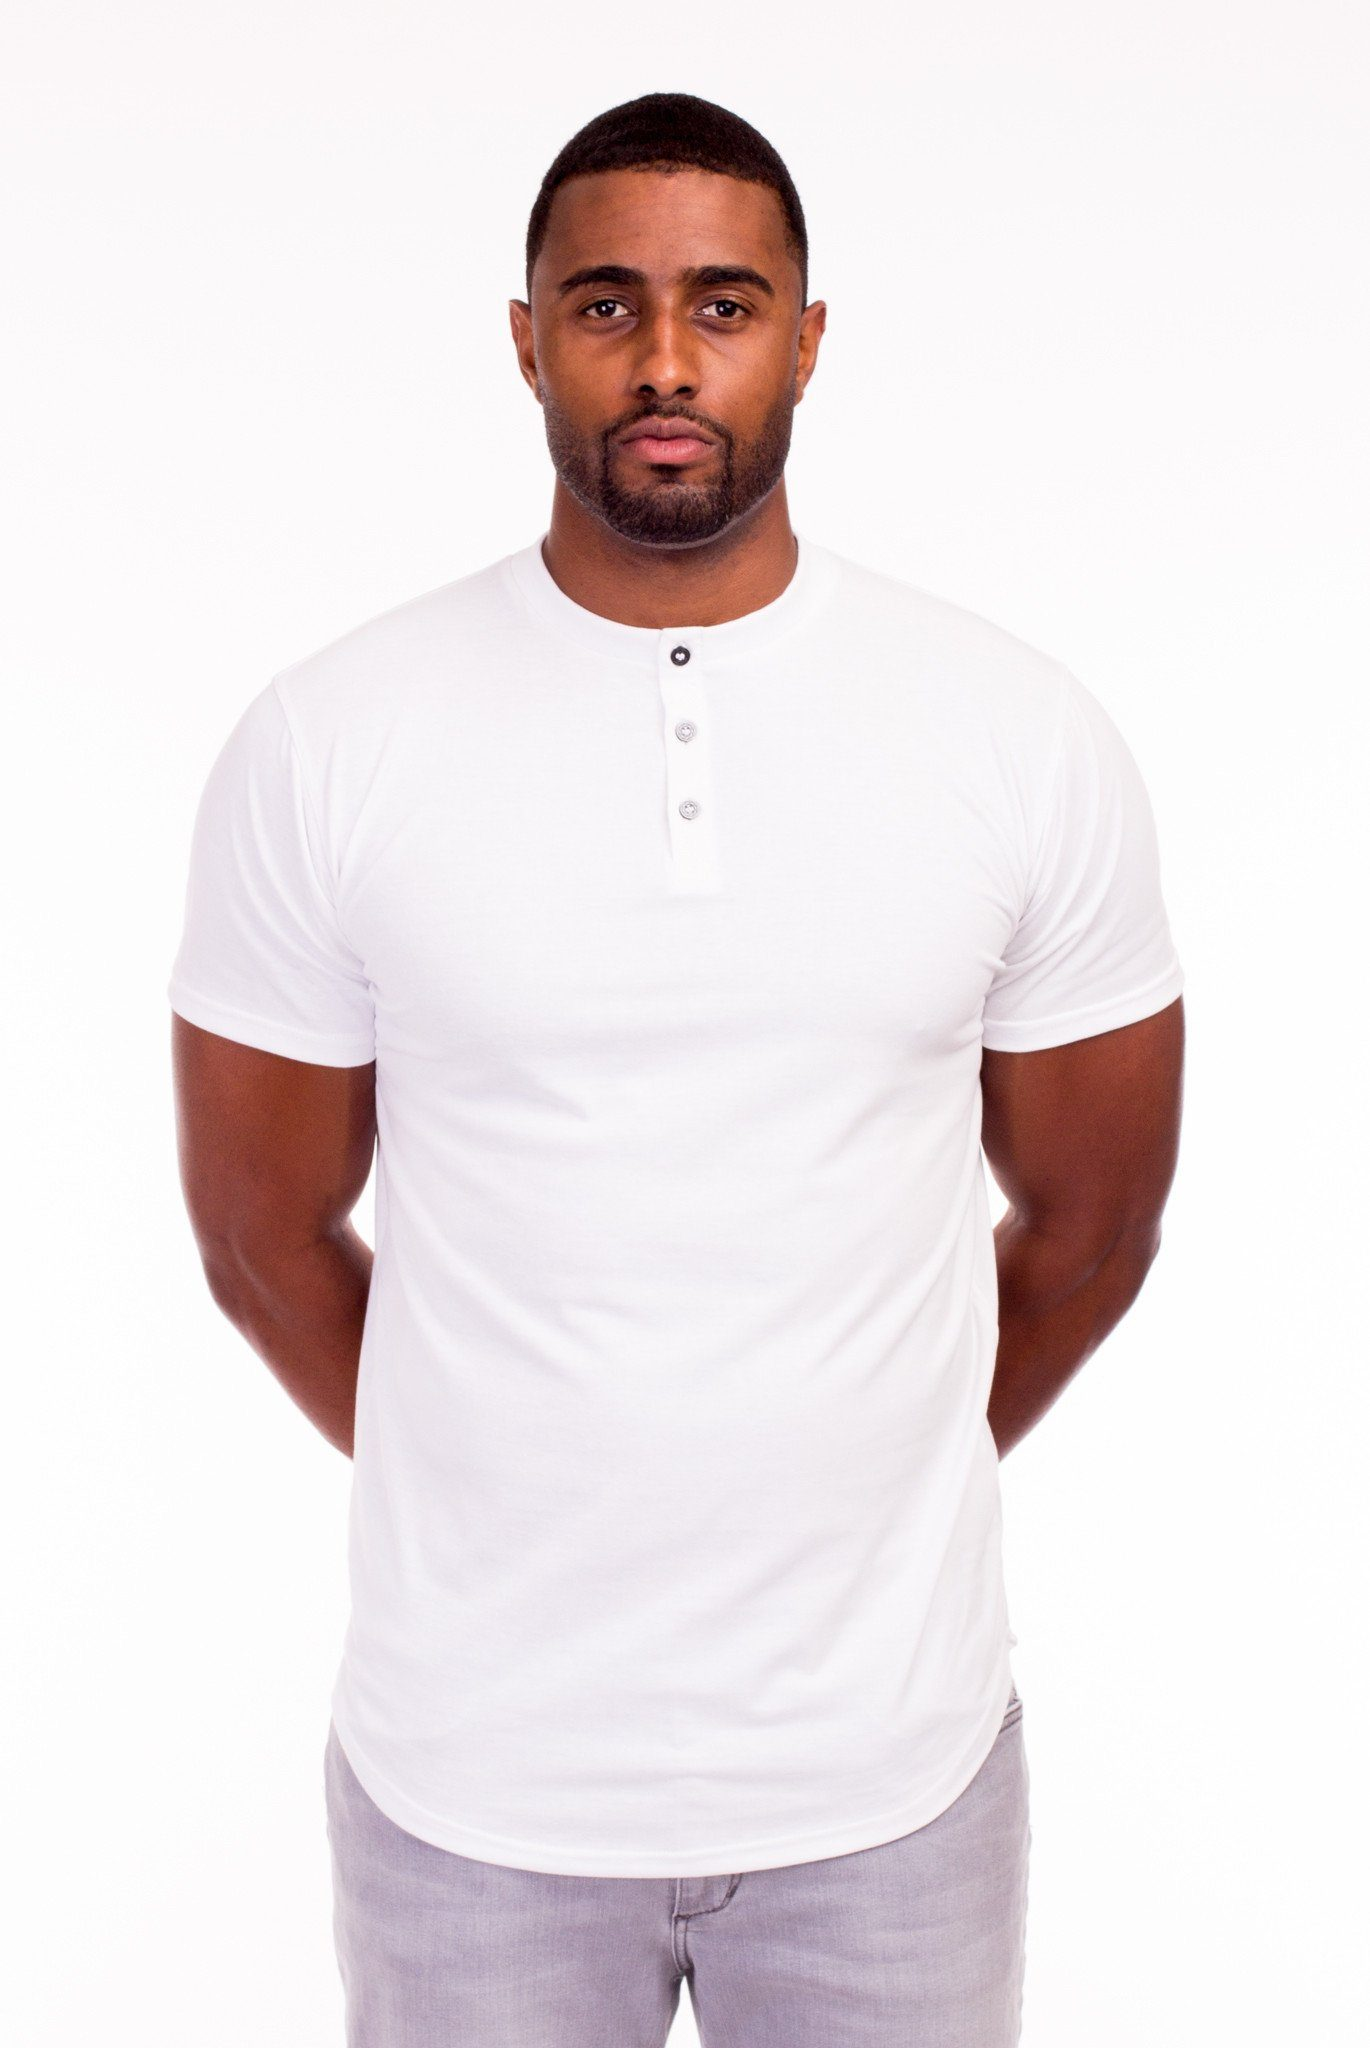 MODIFIED MANDARIN COLLAR T-SHIRT IN WHITE | Poor Little Rich Boy Clothing